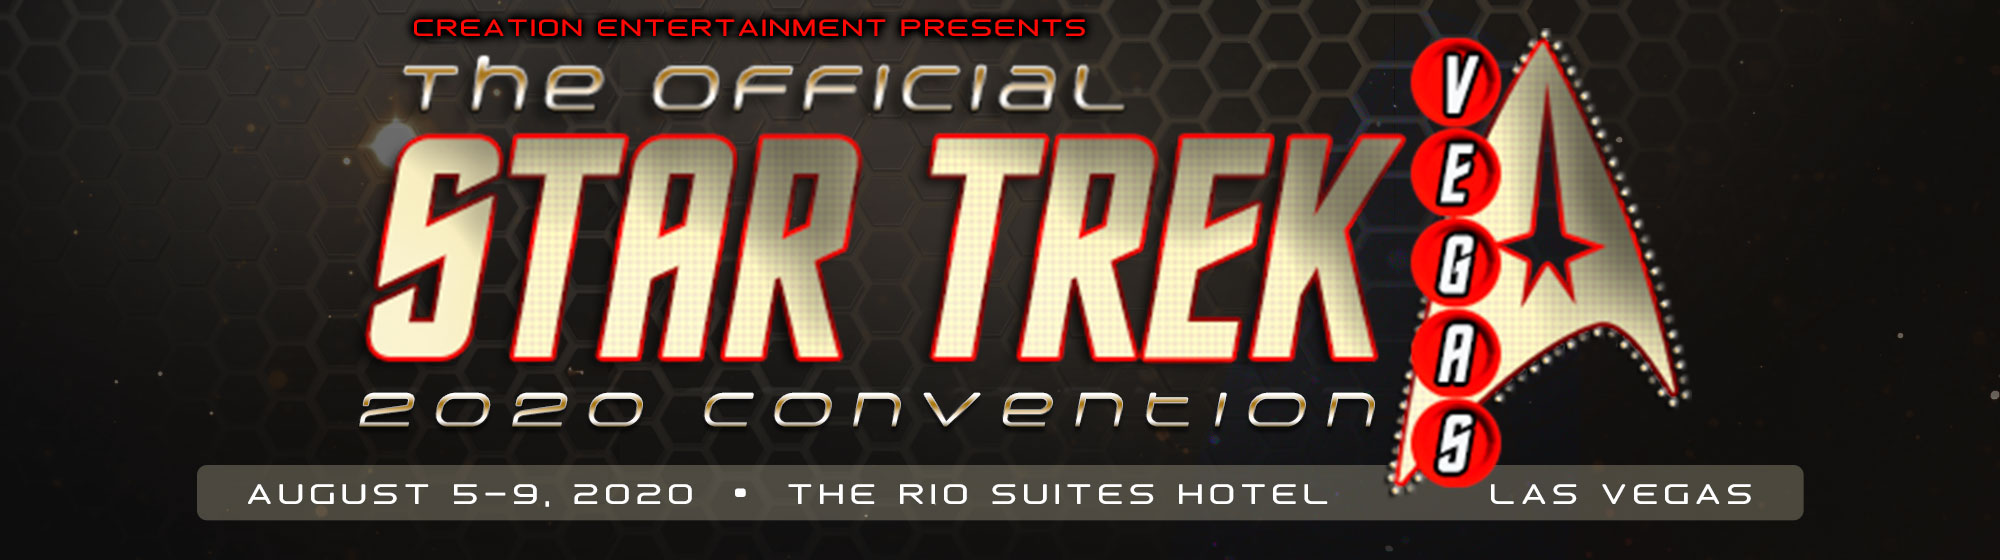 Creation Entertainment's Official Star Trek Convention Las Vegas 2020